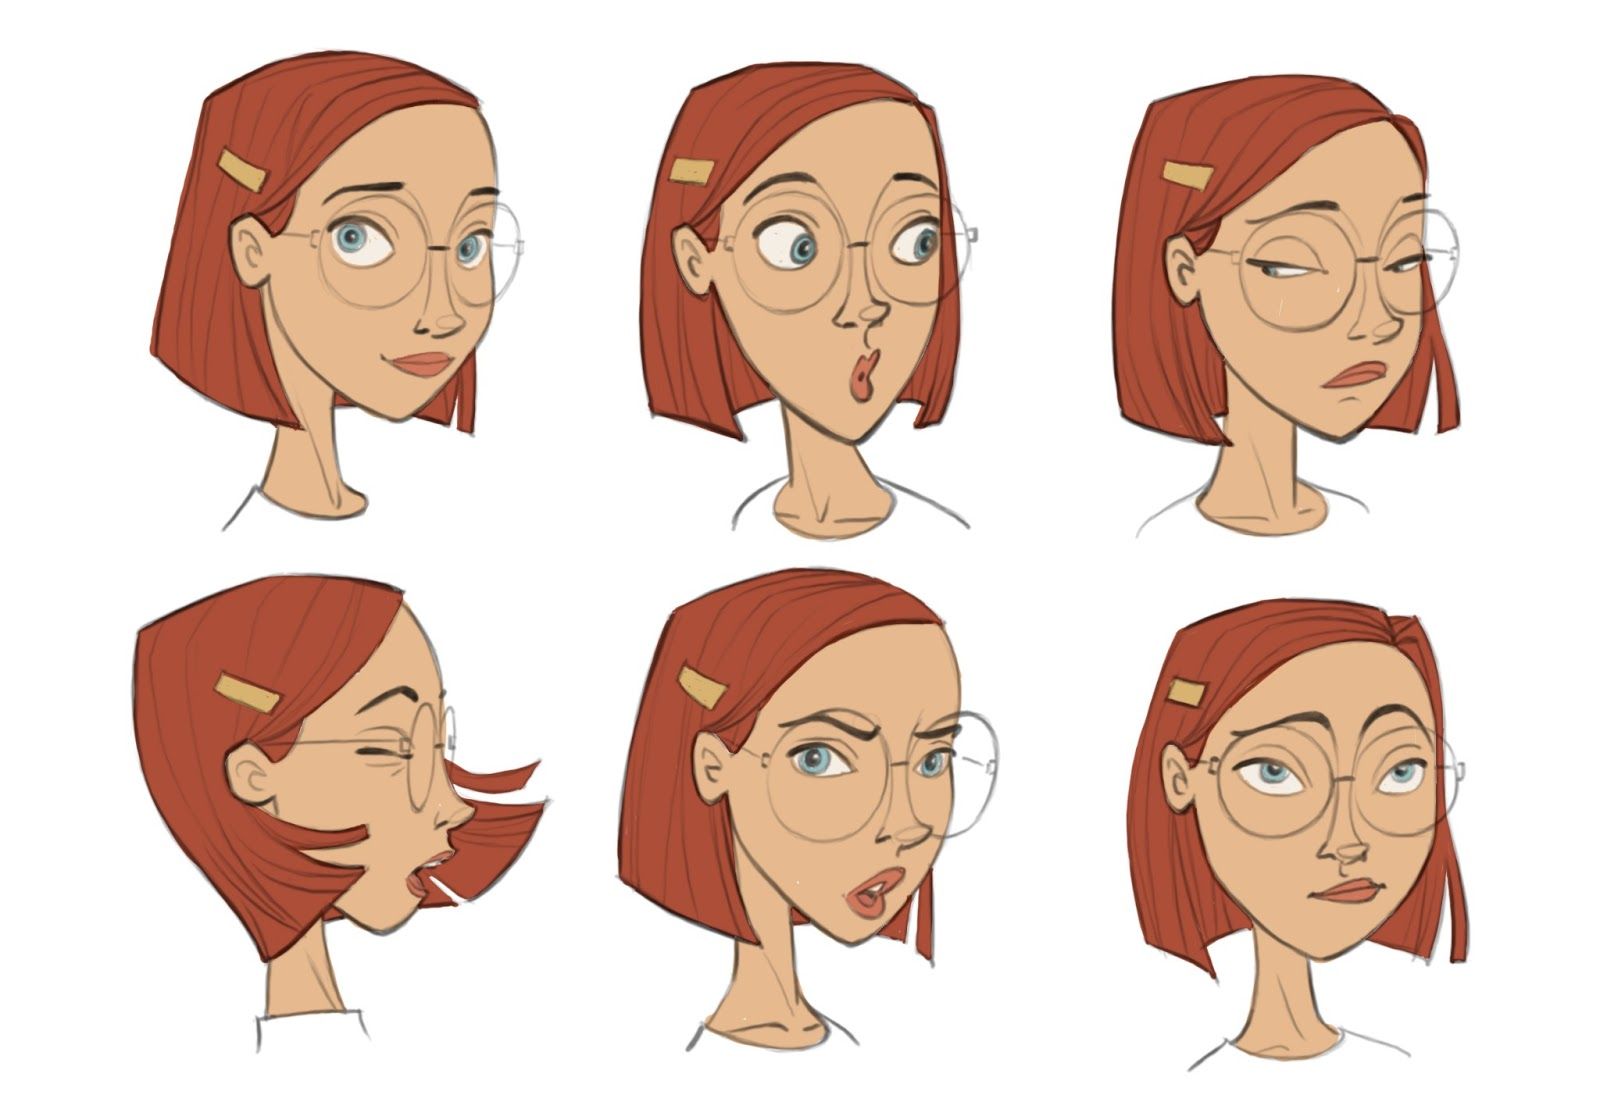 Character Design Emotions : Borja montoro character design for blue